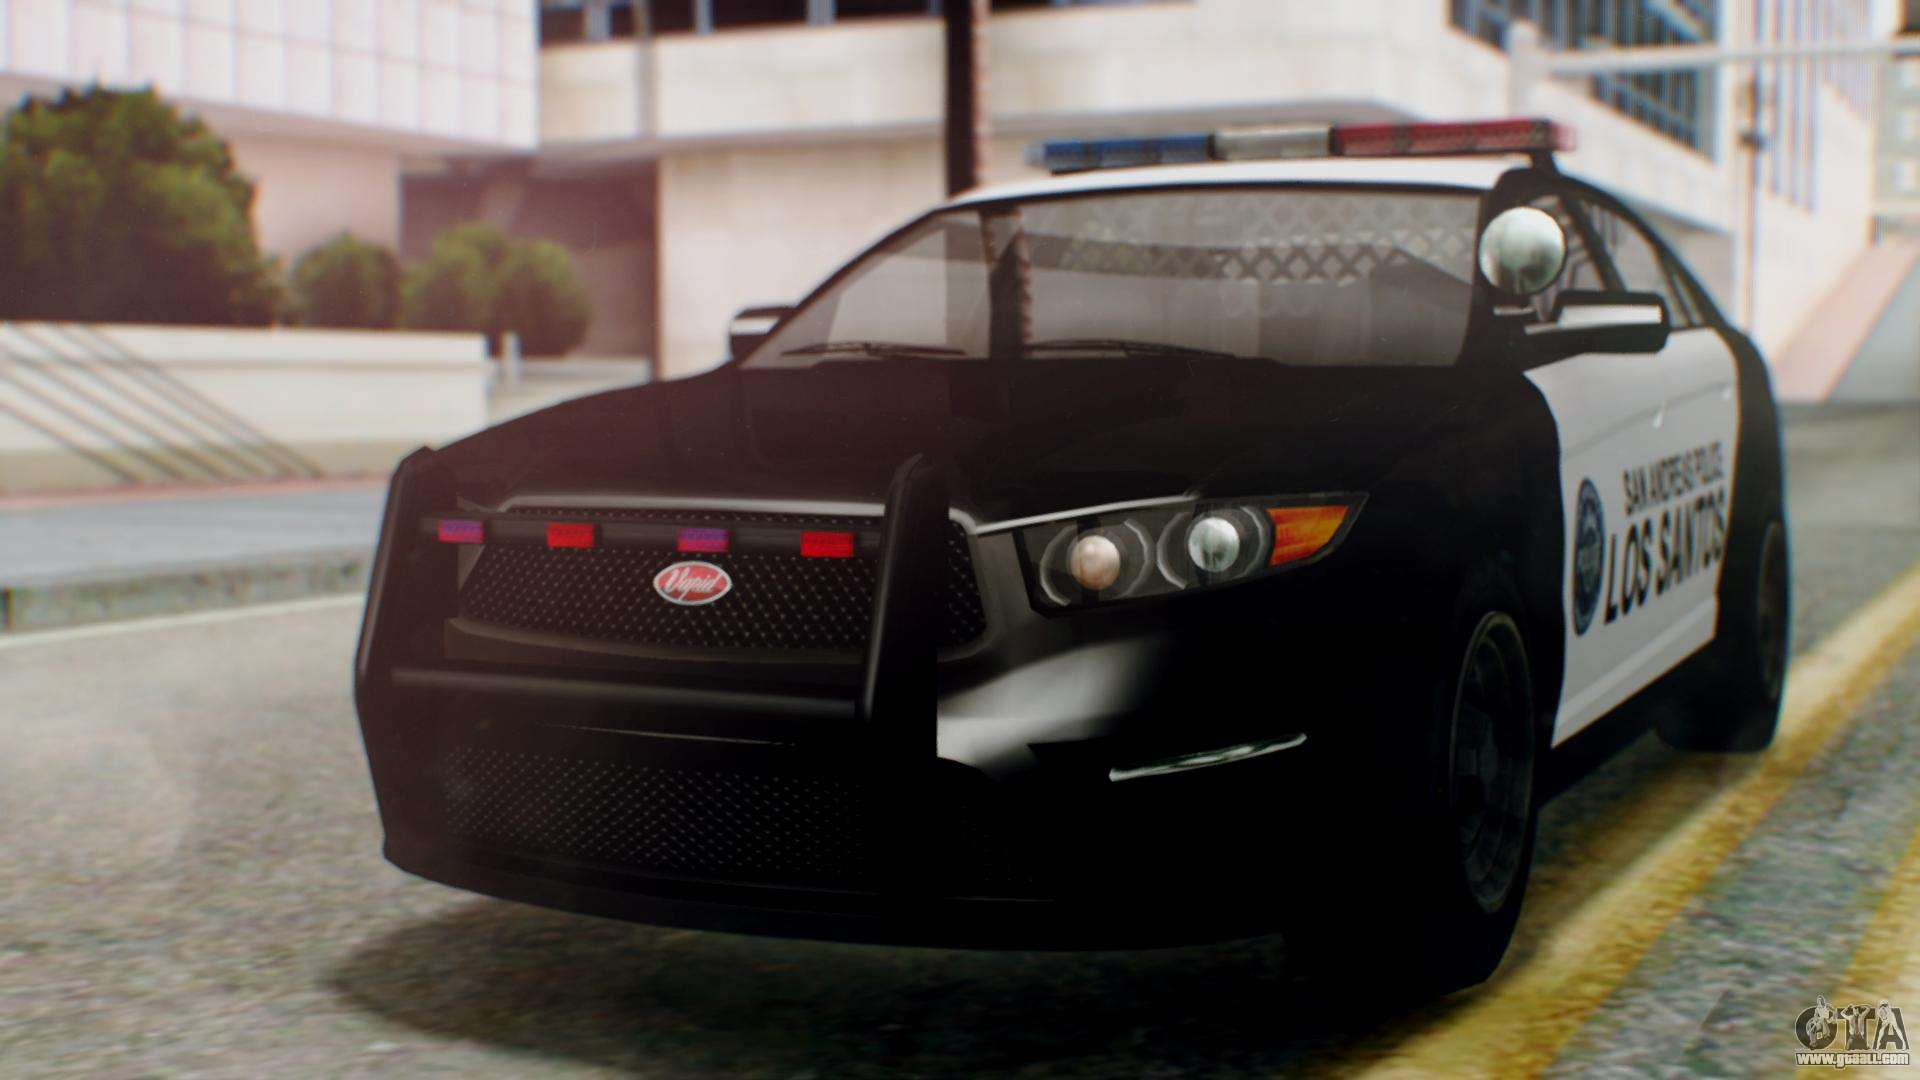 Can You Customize Police Cars In Gta